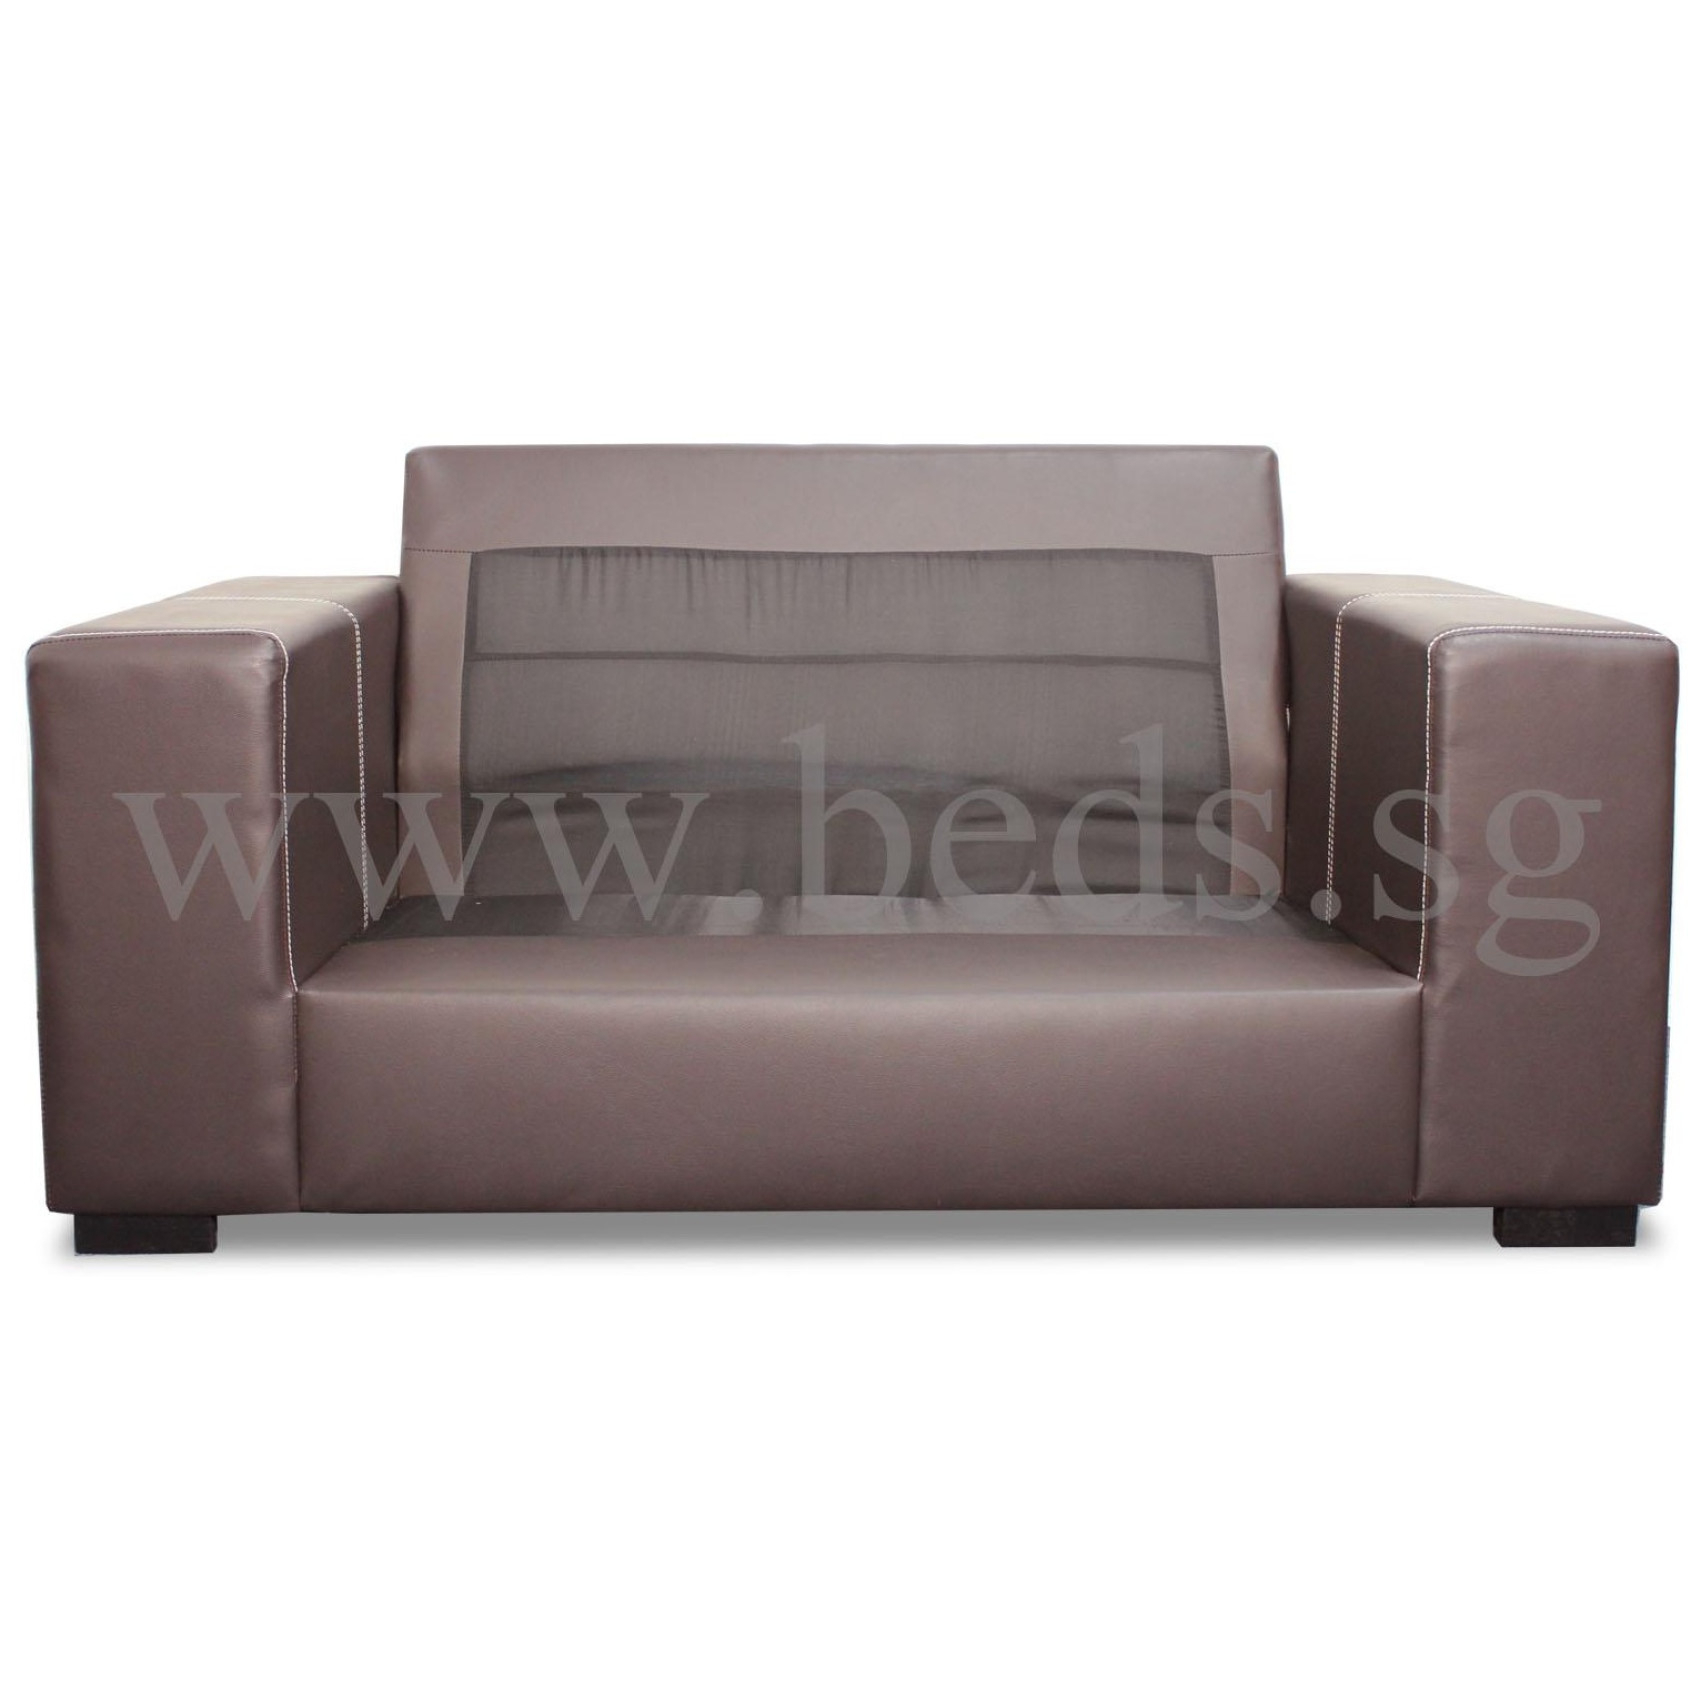 Walter Sofa | Furniture & Home Décor | Fortytwo Intended For Walter Leather Sofa Chairs (Image 20 of 20)